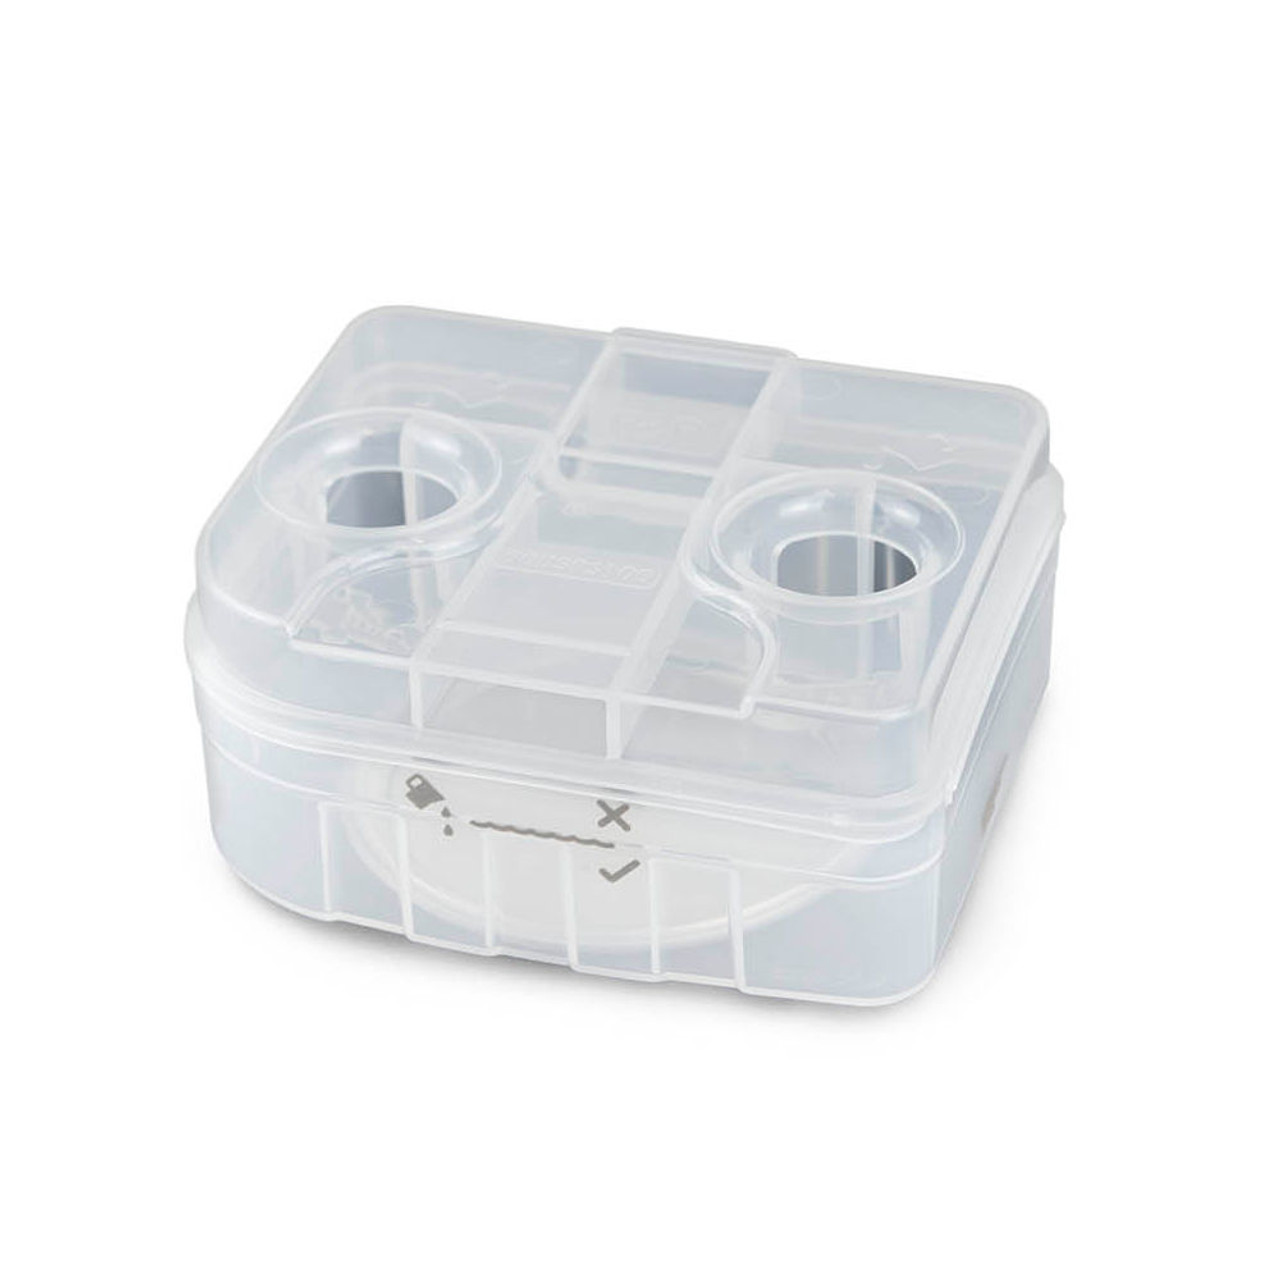 Fisher and Paykel healthcare SleepStyle CPAP Humidification Chamber